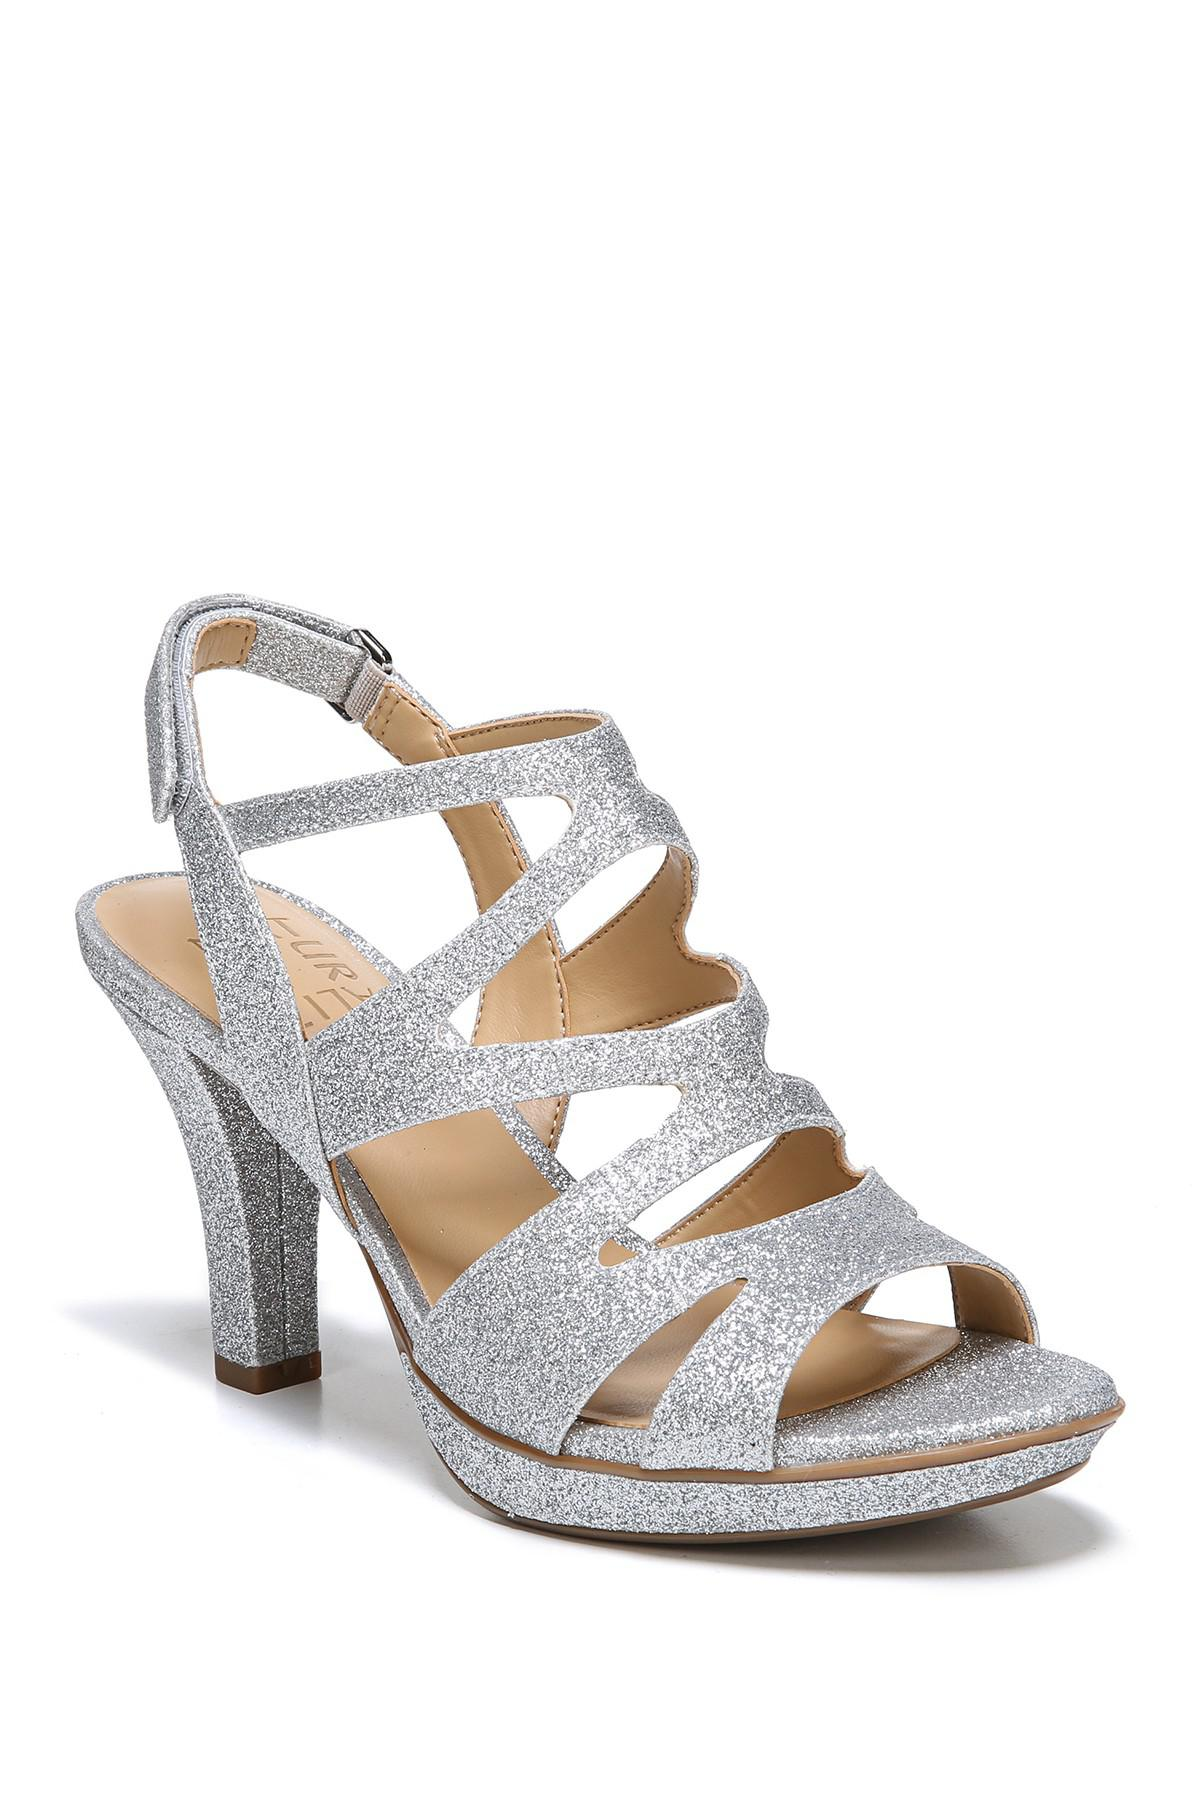 e69d0c8ef8f Naturalizer. Women s Metallic Dianna Strappy Heeled Sandal - Wide Width  Available